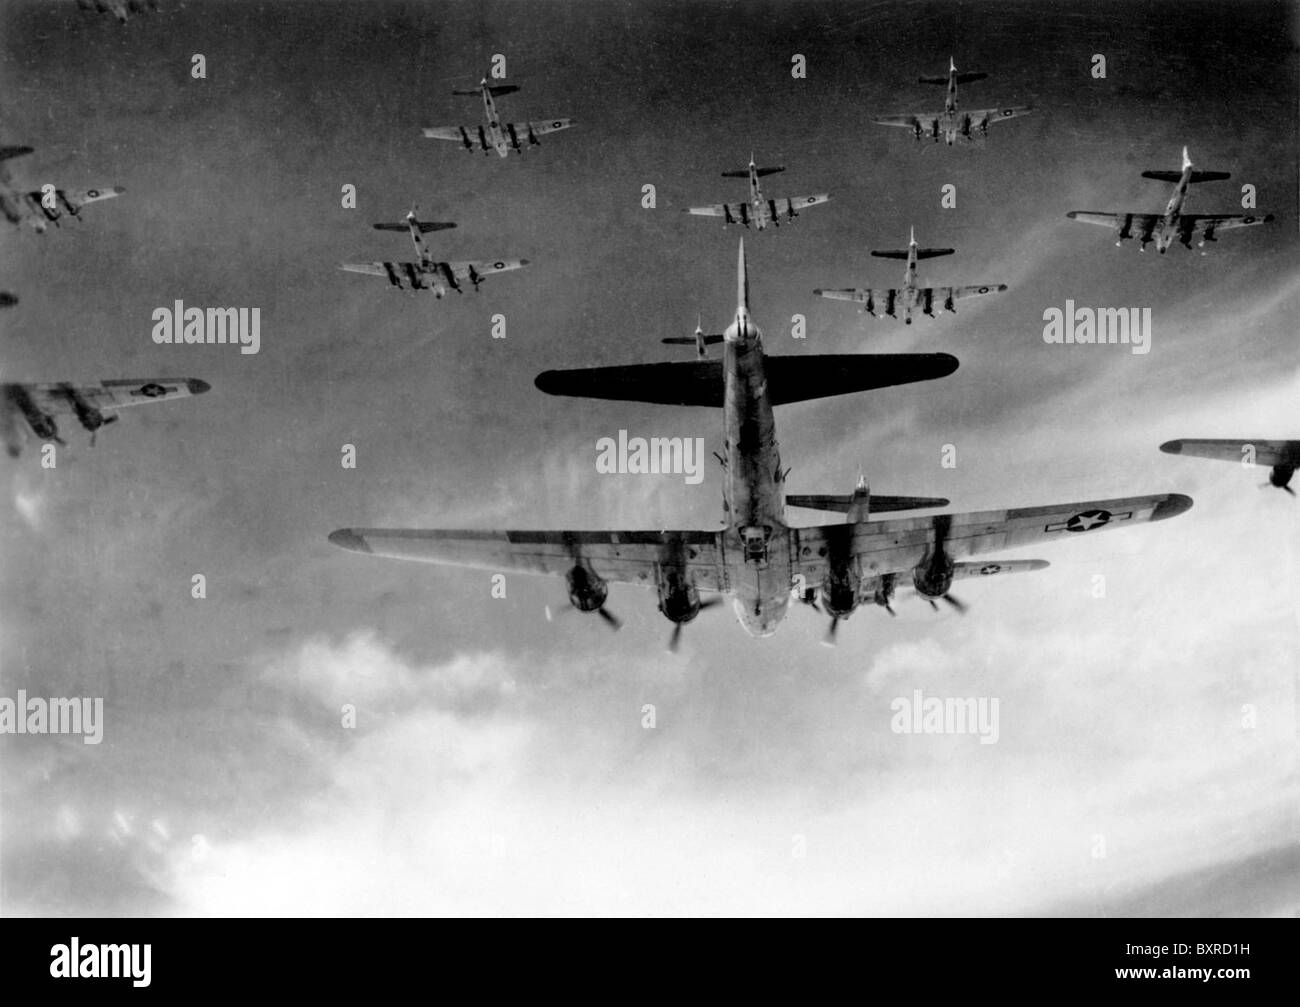 B-17 Flying Fortress bombers during a World War 2 bombing mission. - Stock Image